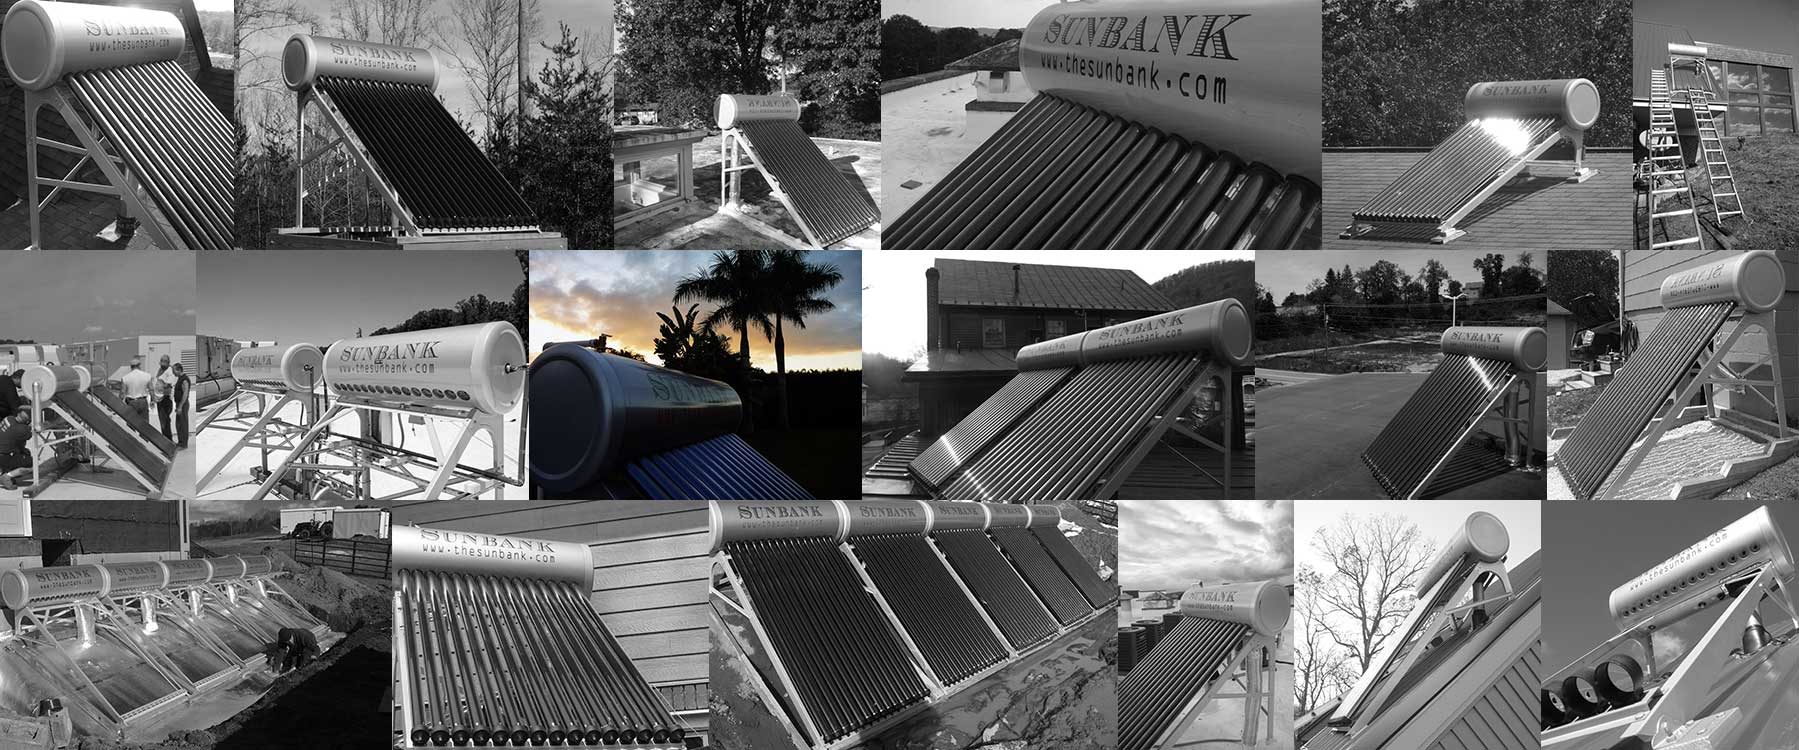 collage showing several residential and commercial solar water heater installations